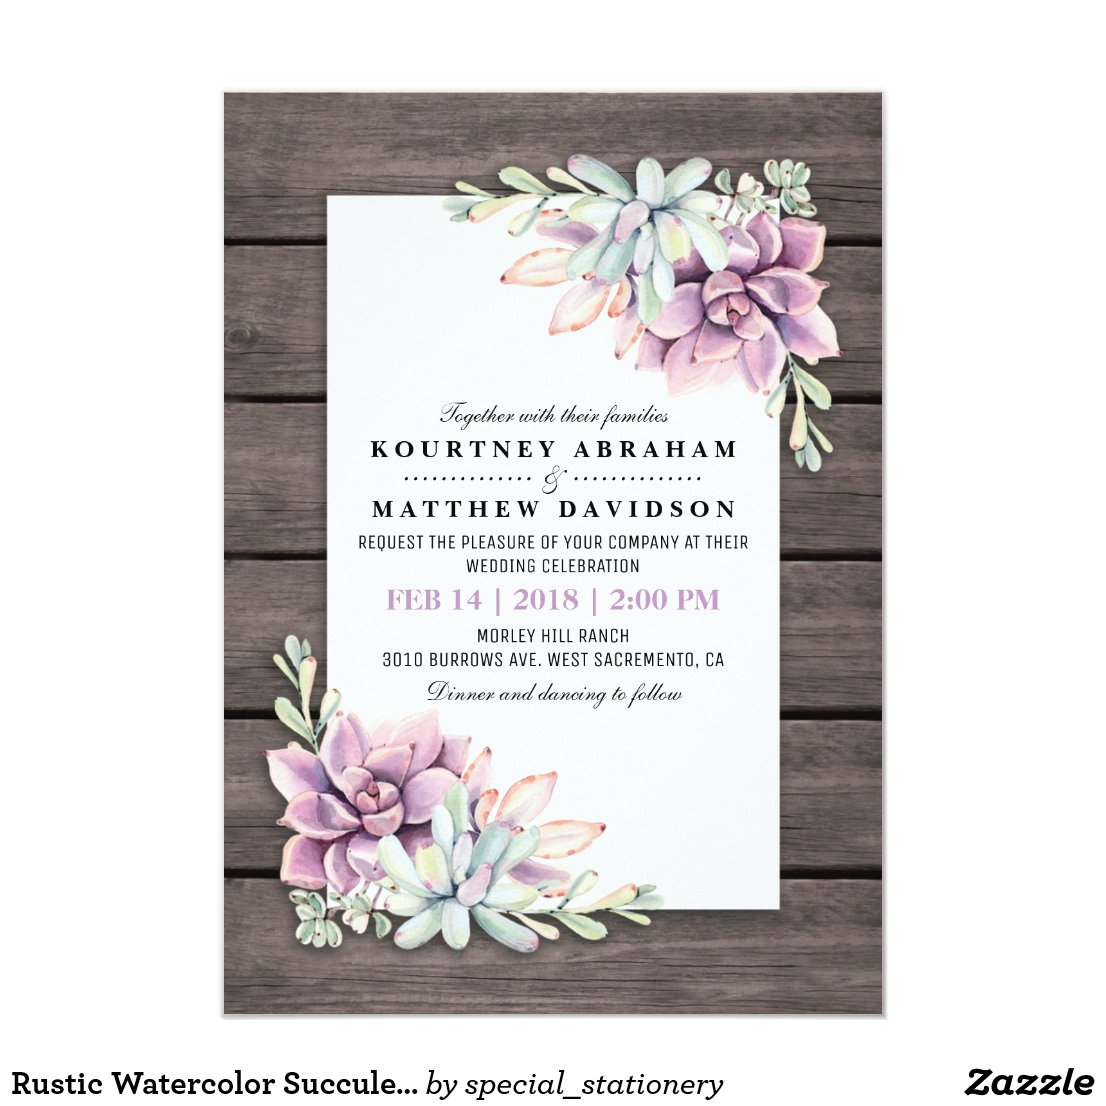 Rustic Watercolor Succulent Wedding Invitation